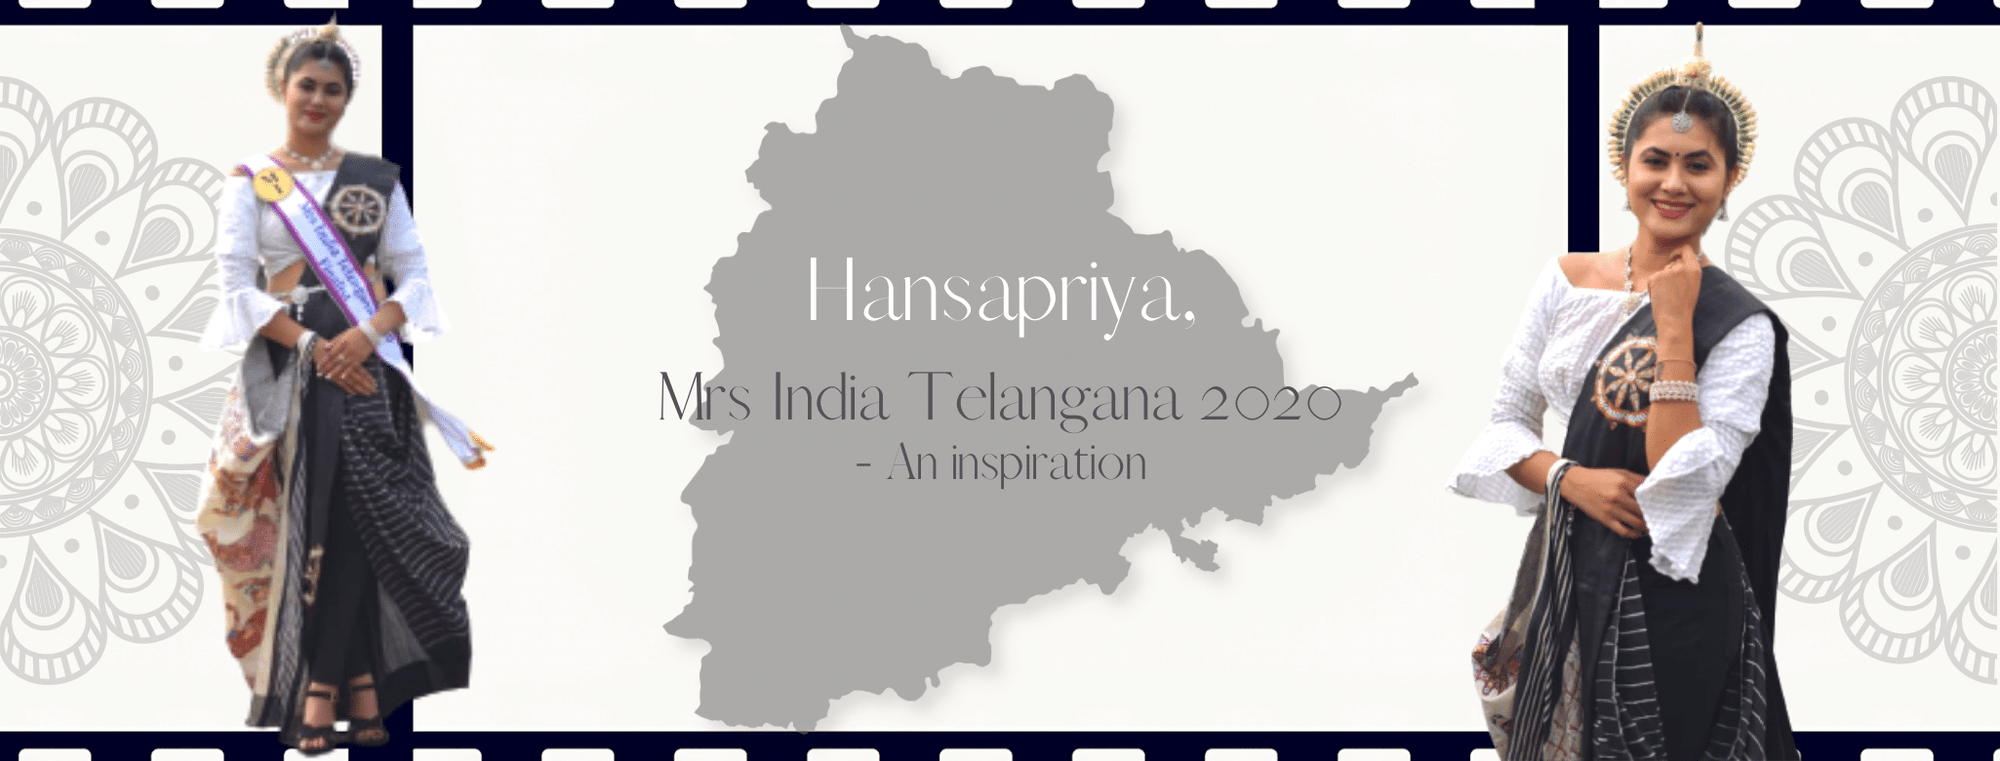 In conversation with Ms. Hanspriya